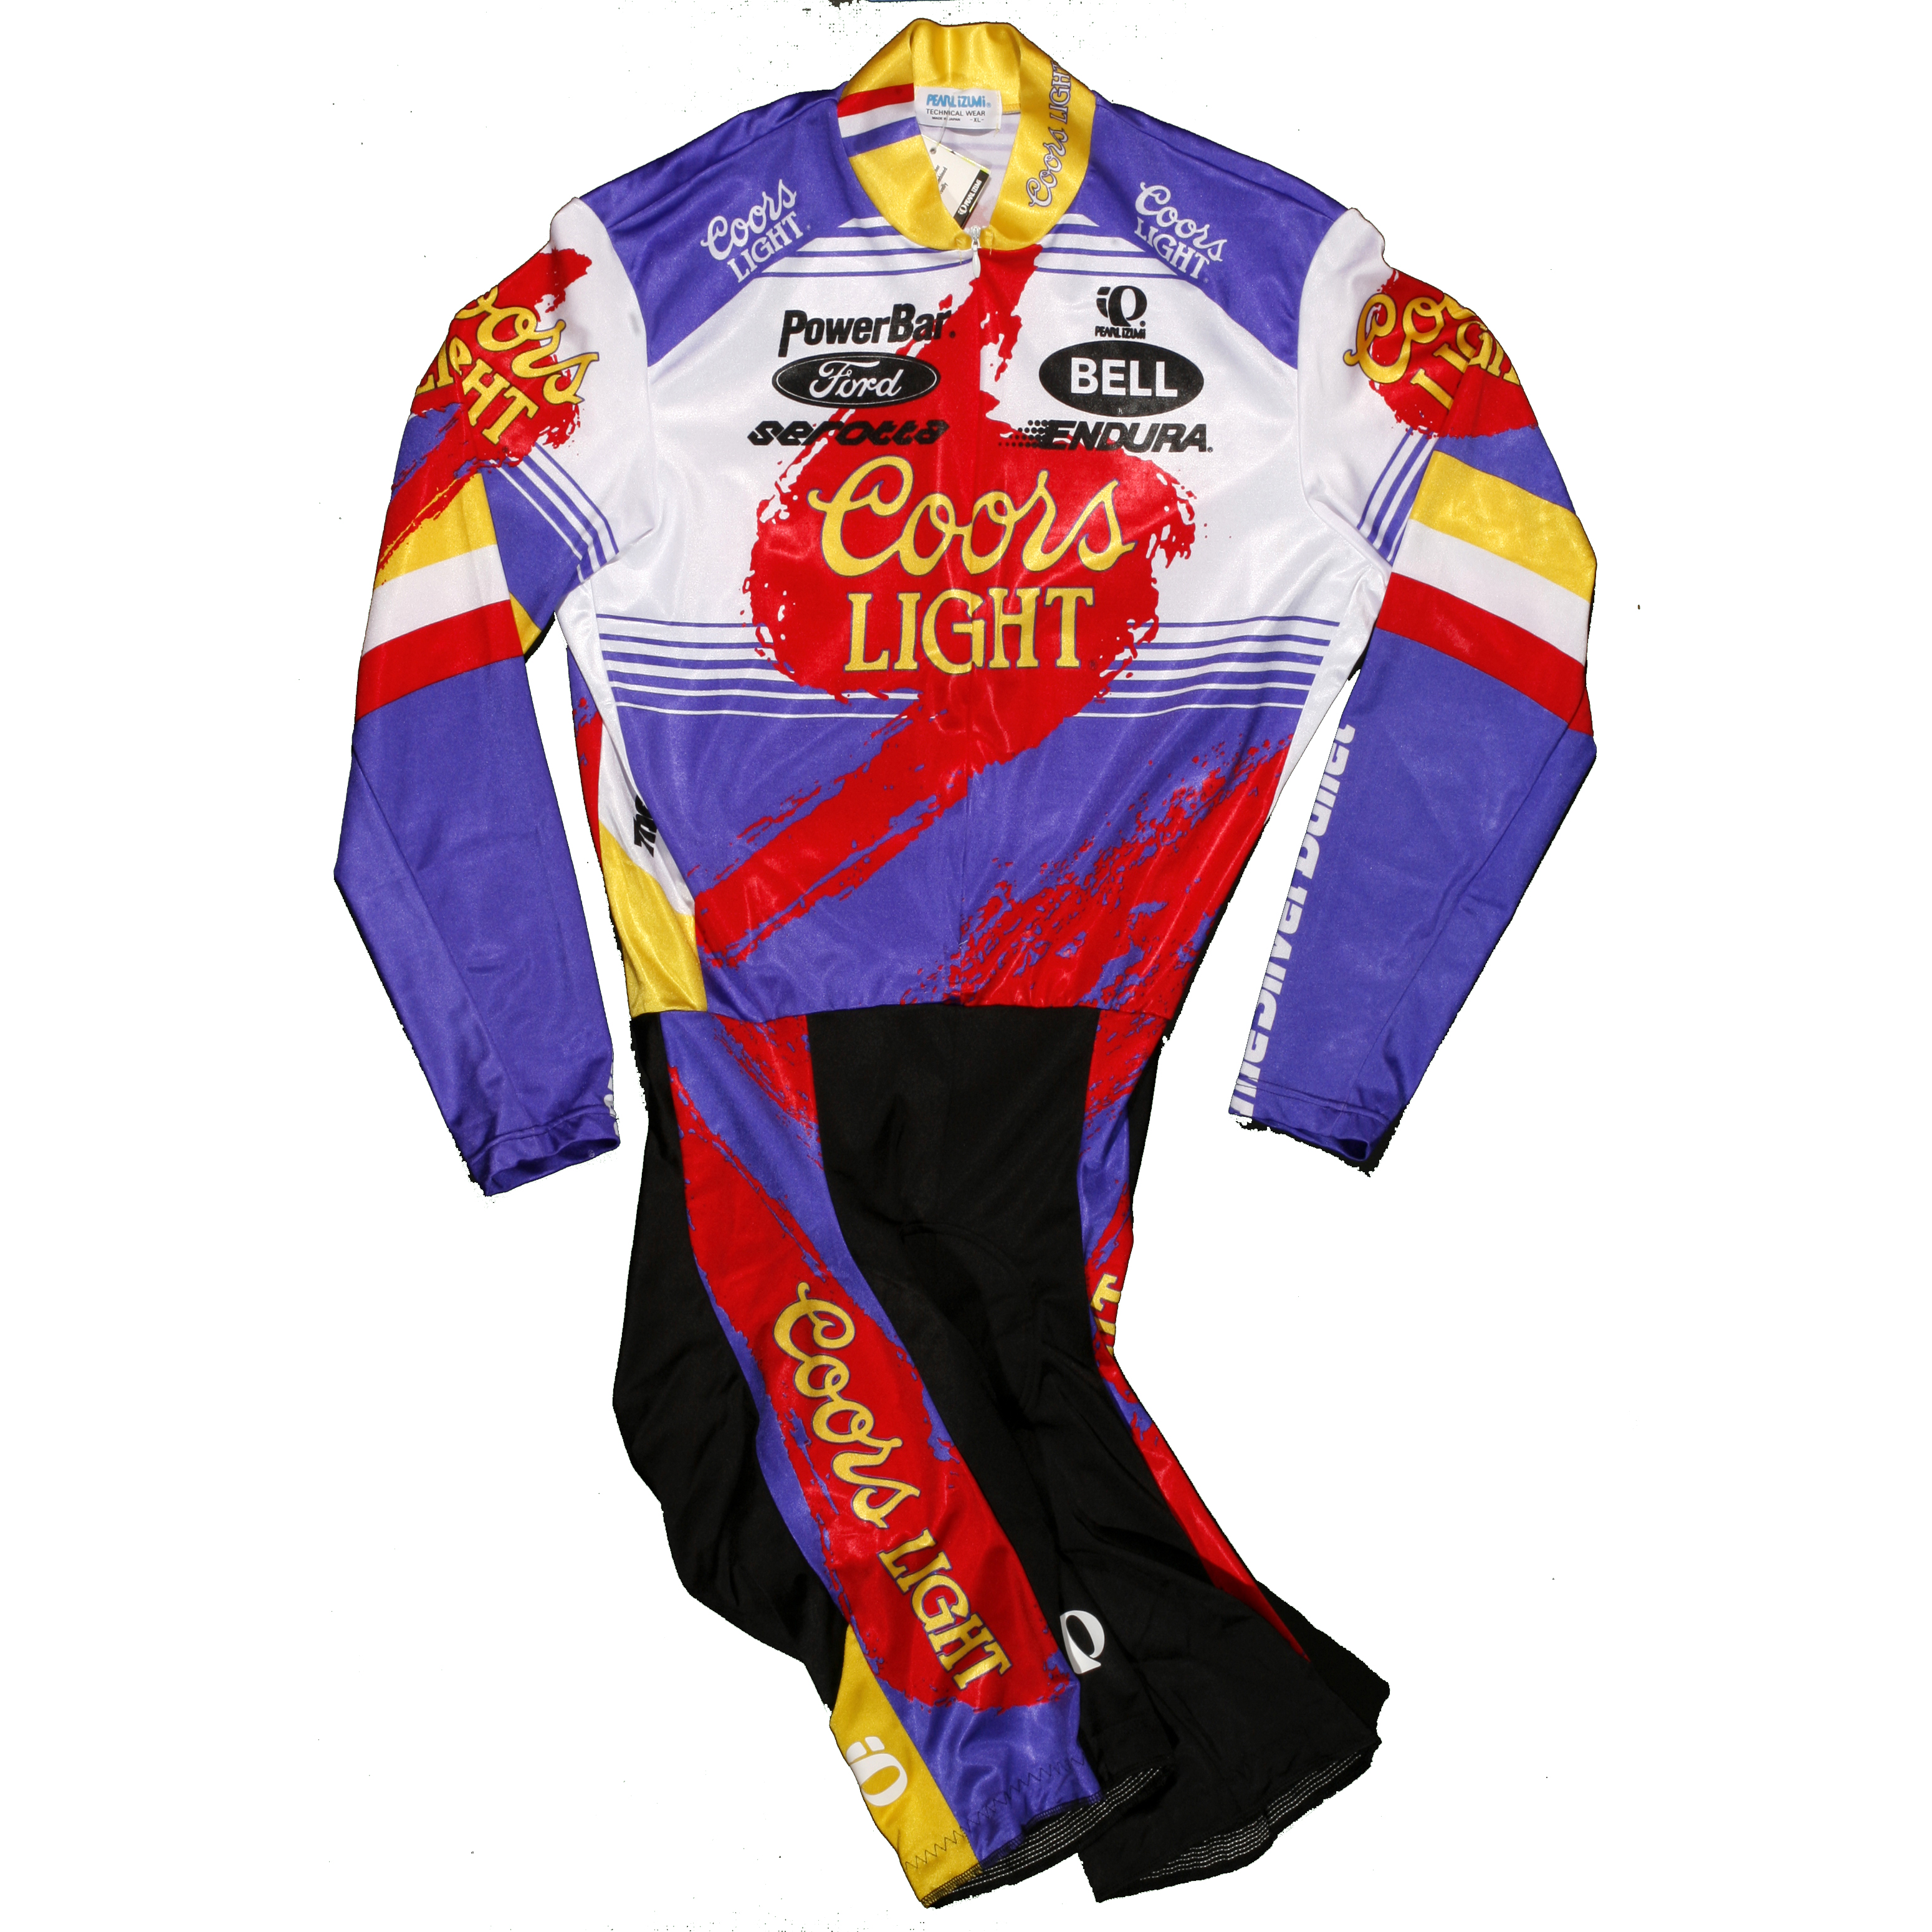 73eff87c2 Authentic Coors Light Skinsuit - Team Issue - Horton Collection